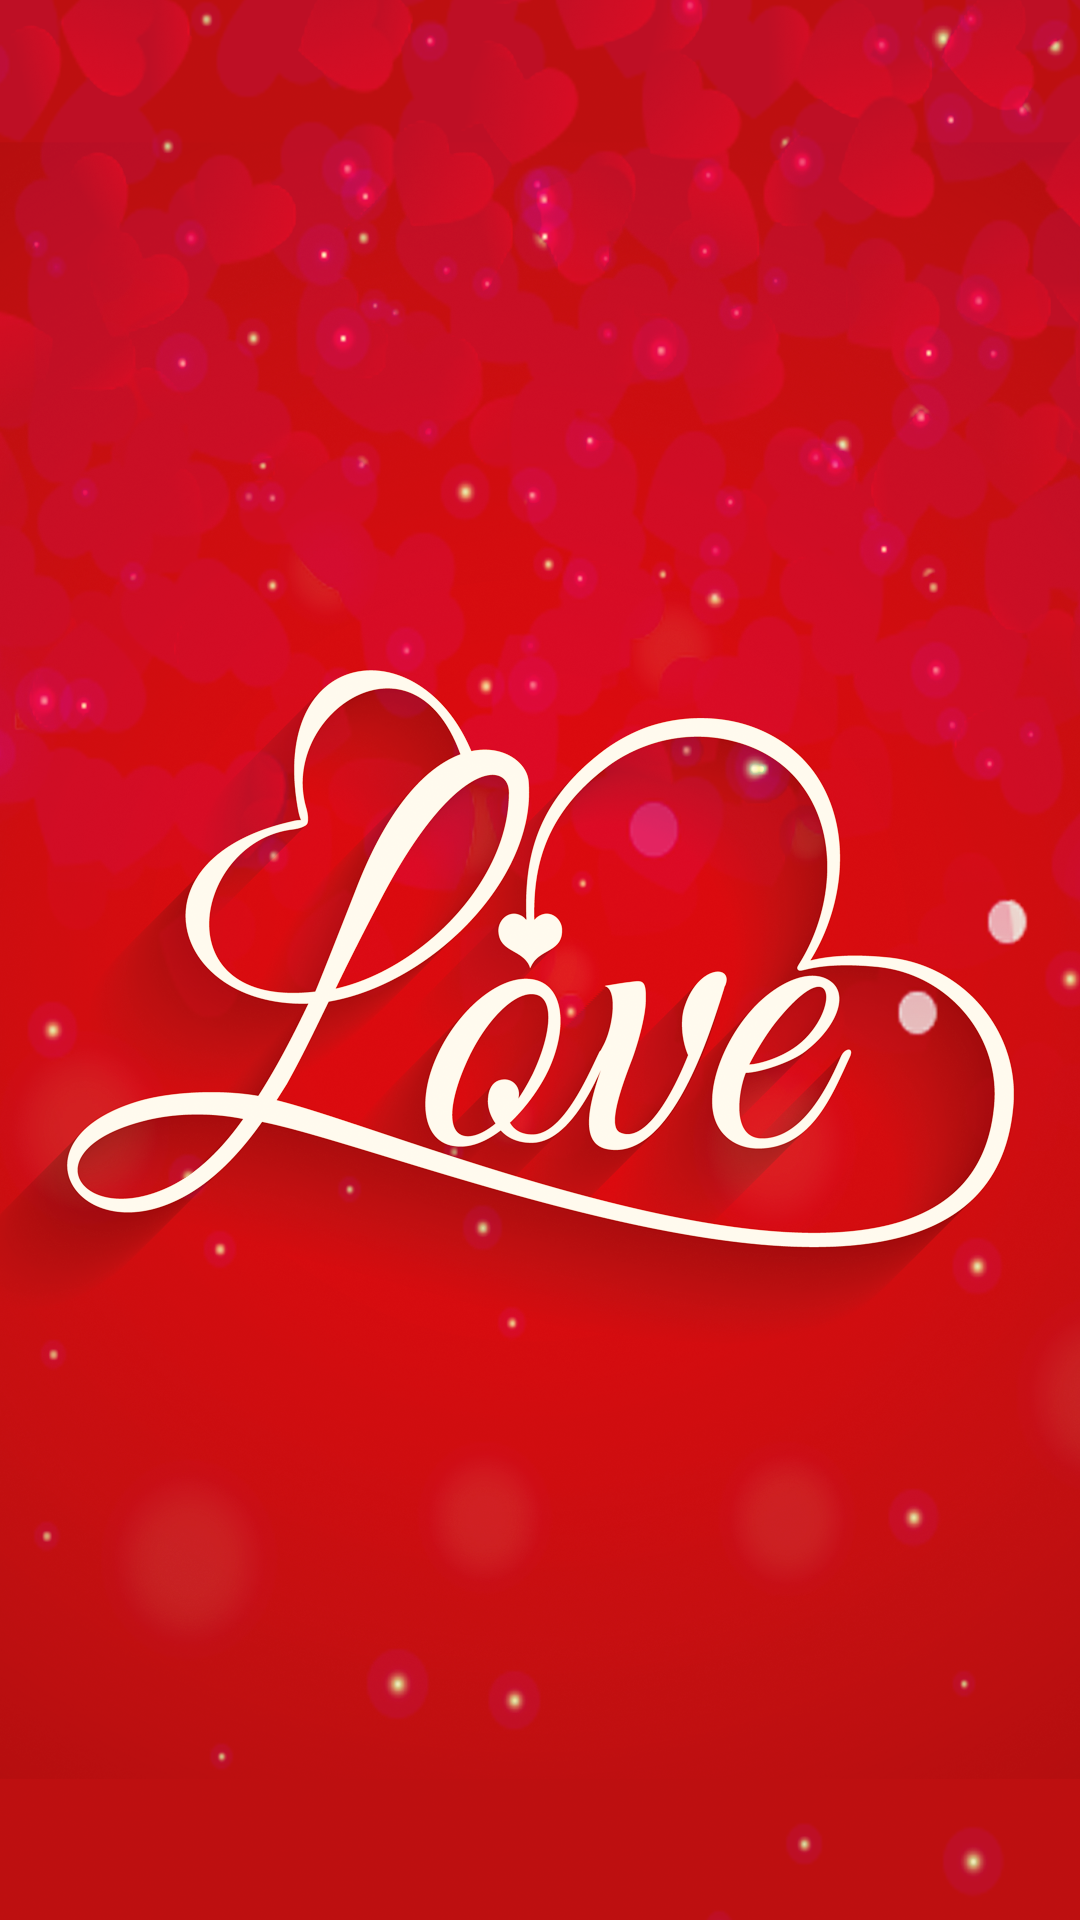 Best 9 Love Beautiful Wallpapers 1080p For Your Android Or Iphone Wallpapers Android Iphone Wall Valentines Wallpaper Love Wallpaper Download Love Wallpaper